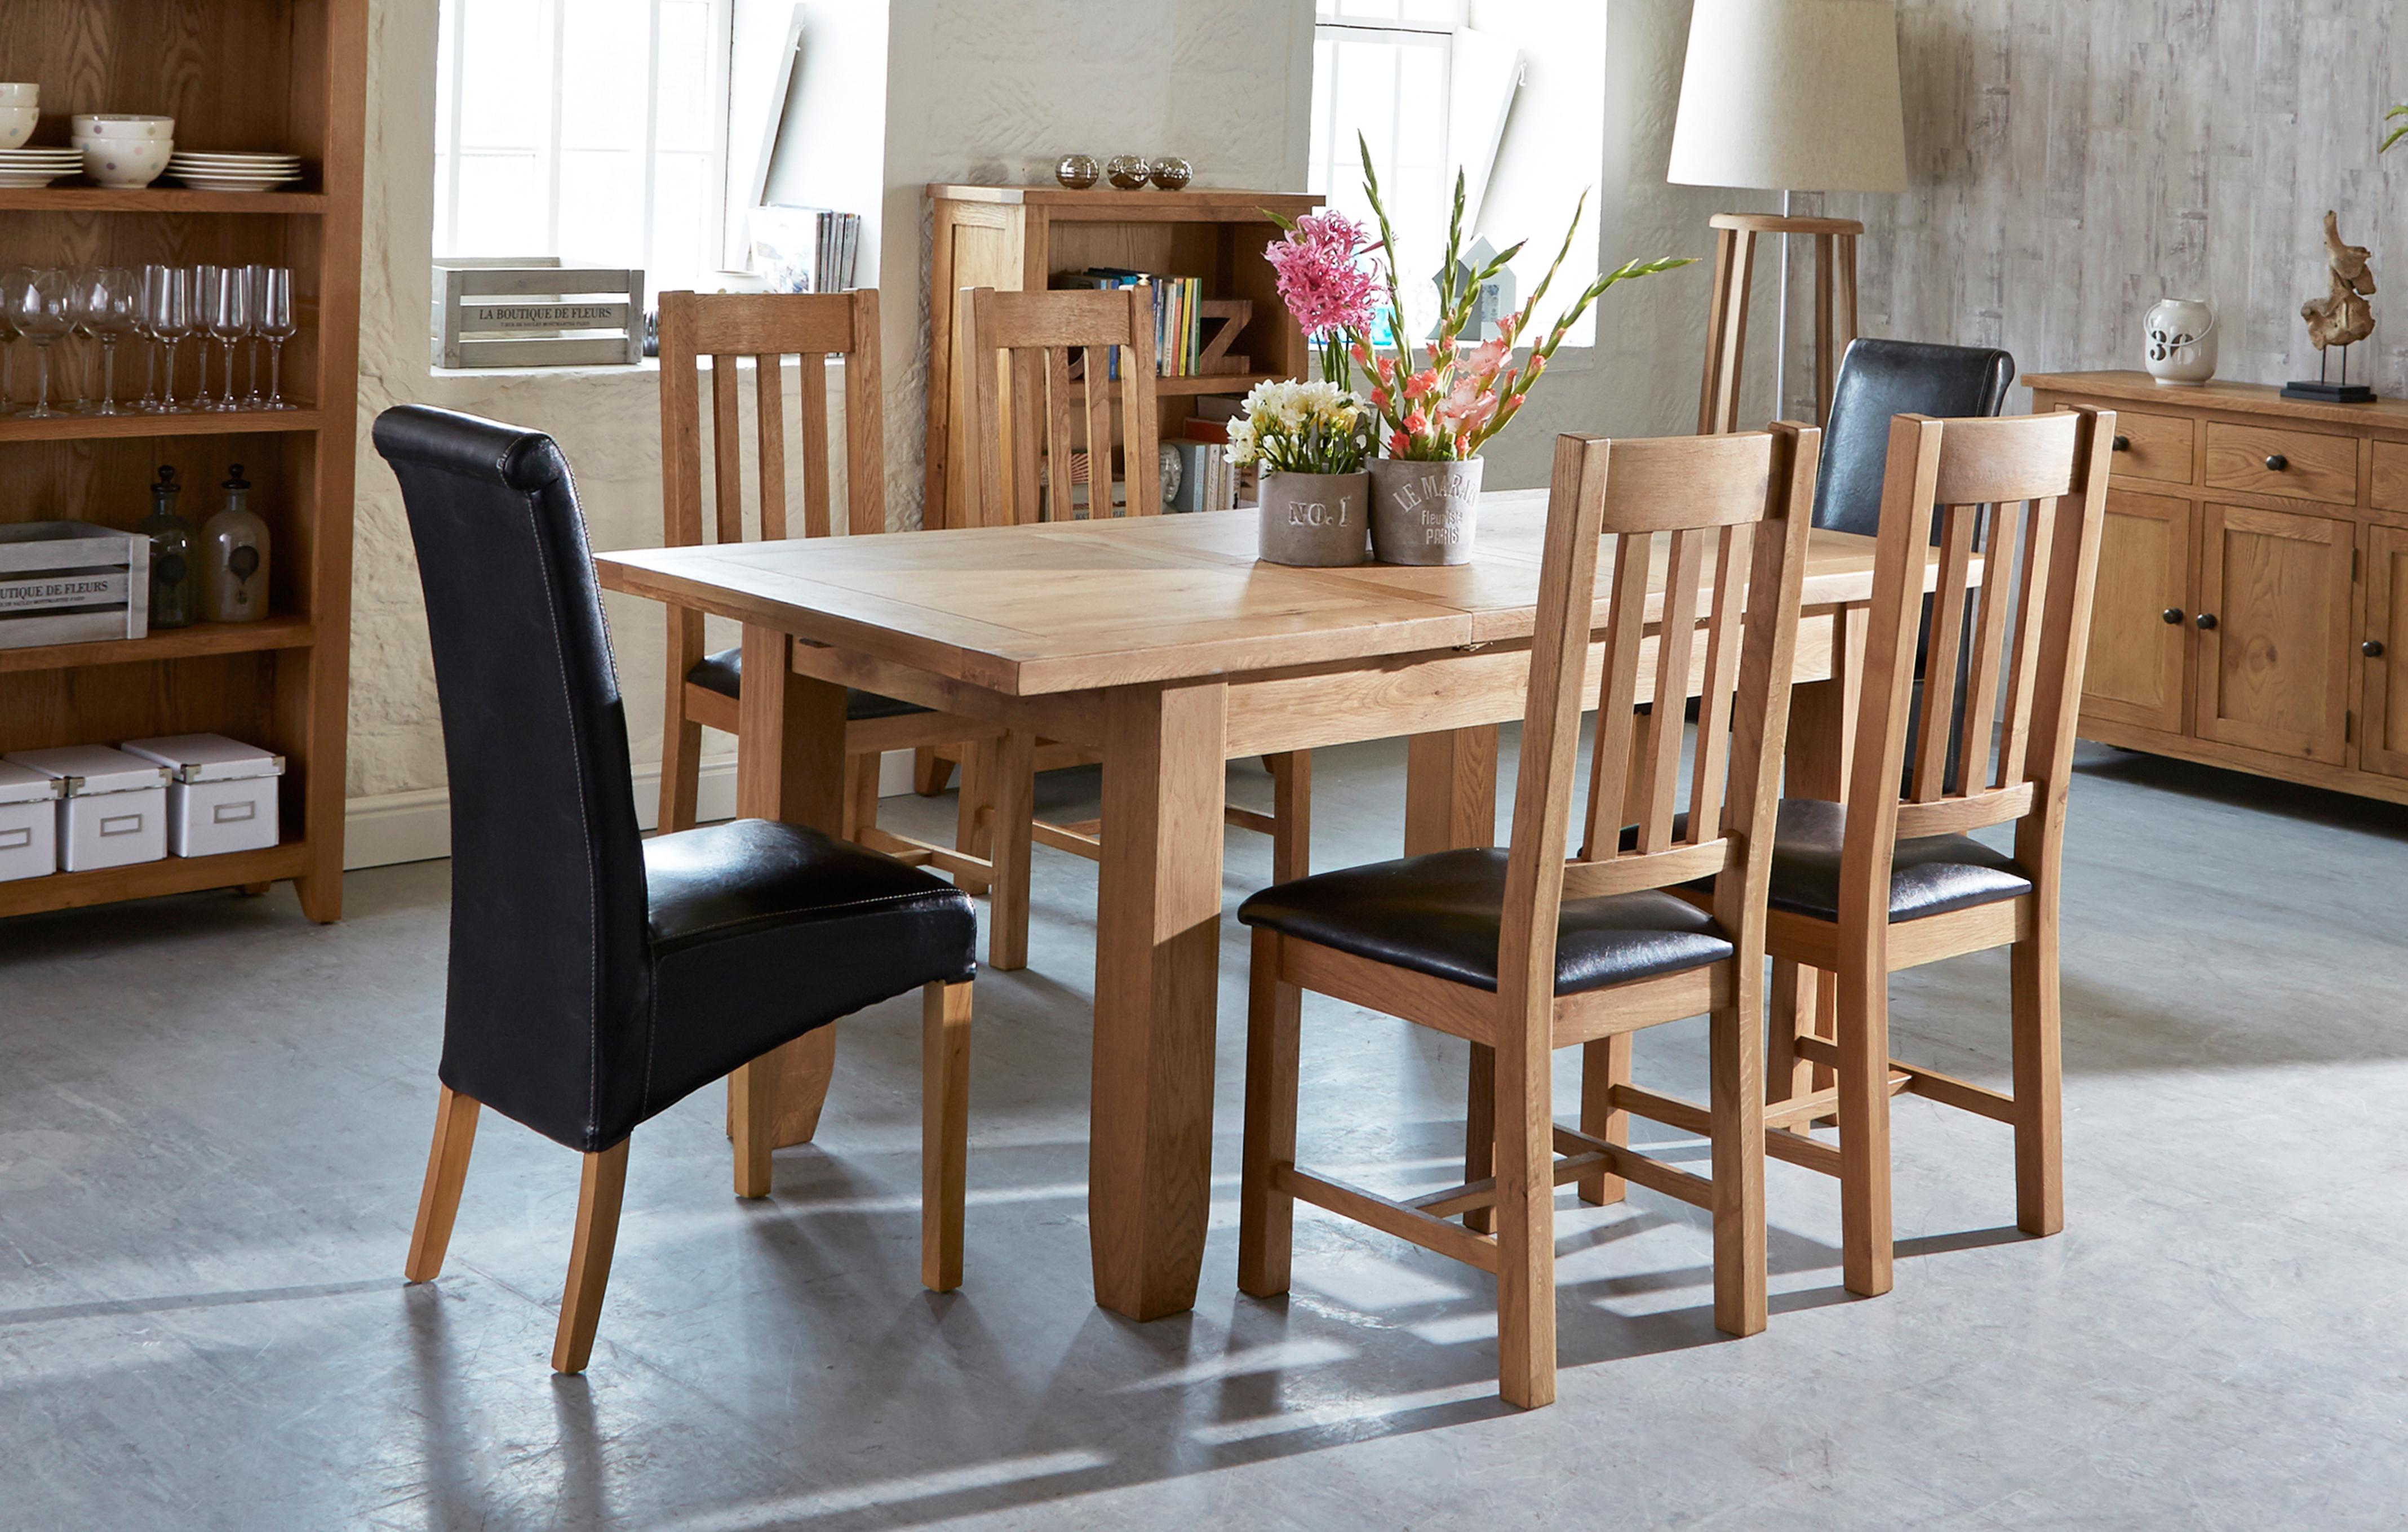 dining table and chairs Dining Tables And Chairs   See All Our Sets, Tables And Chairs | DFS dining table and chairs